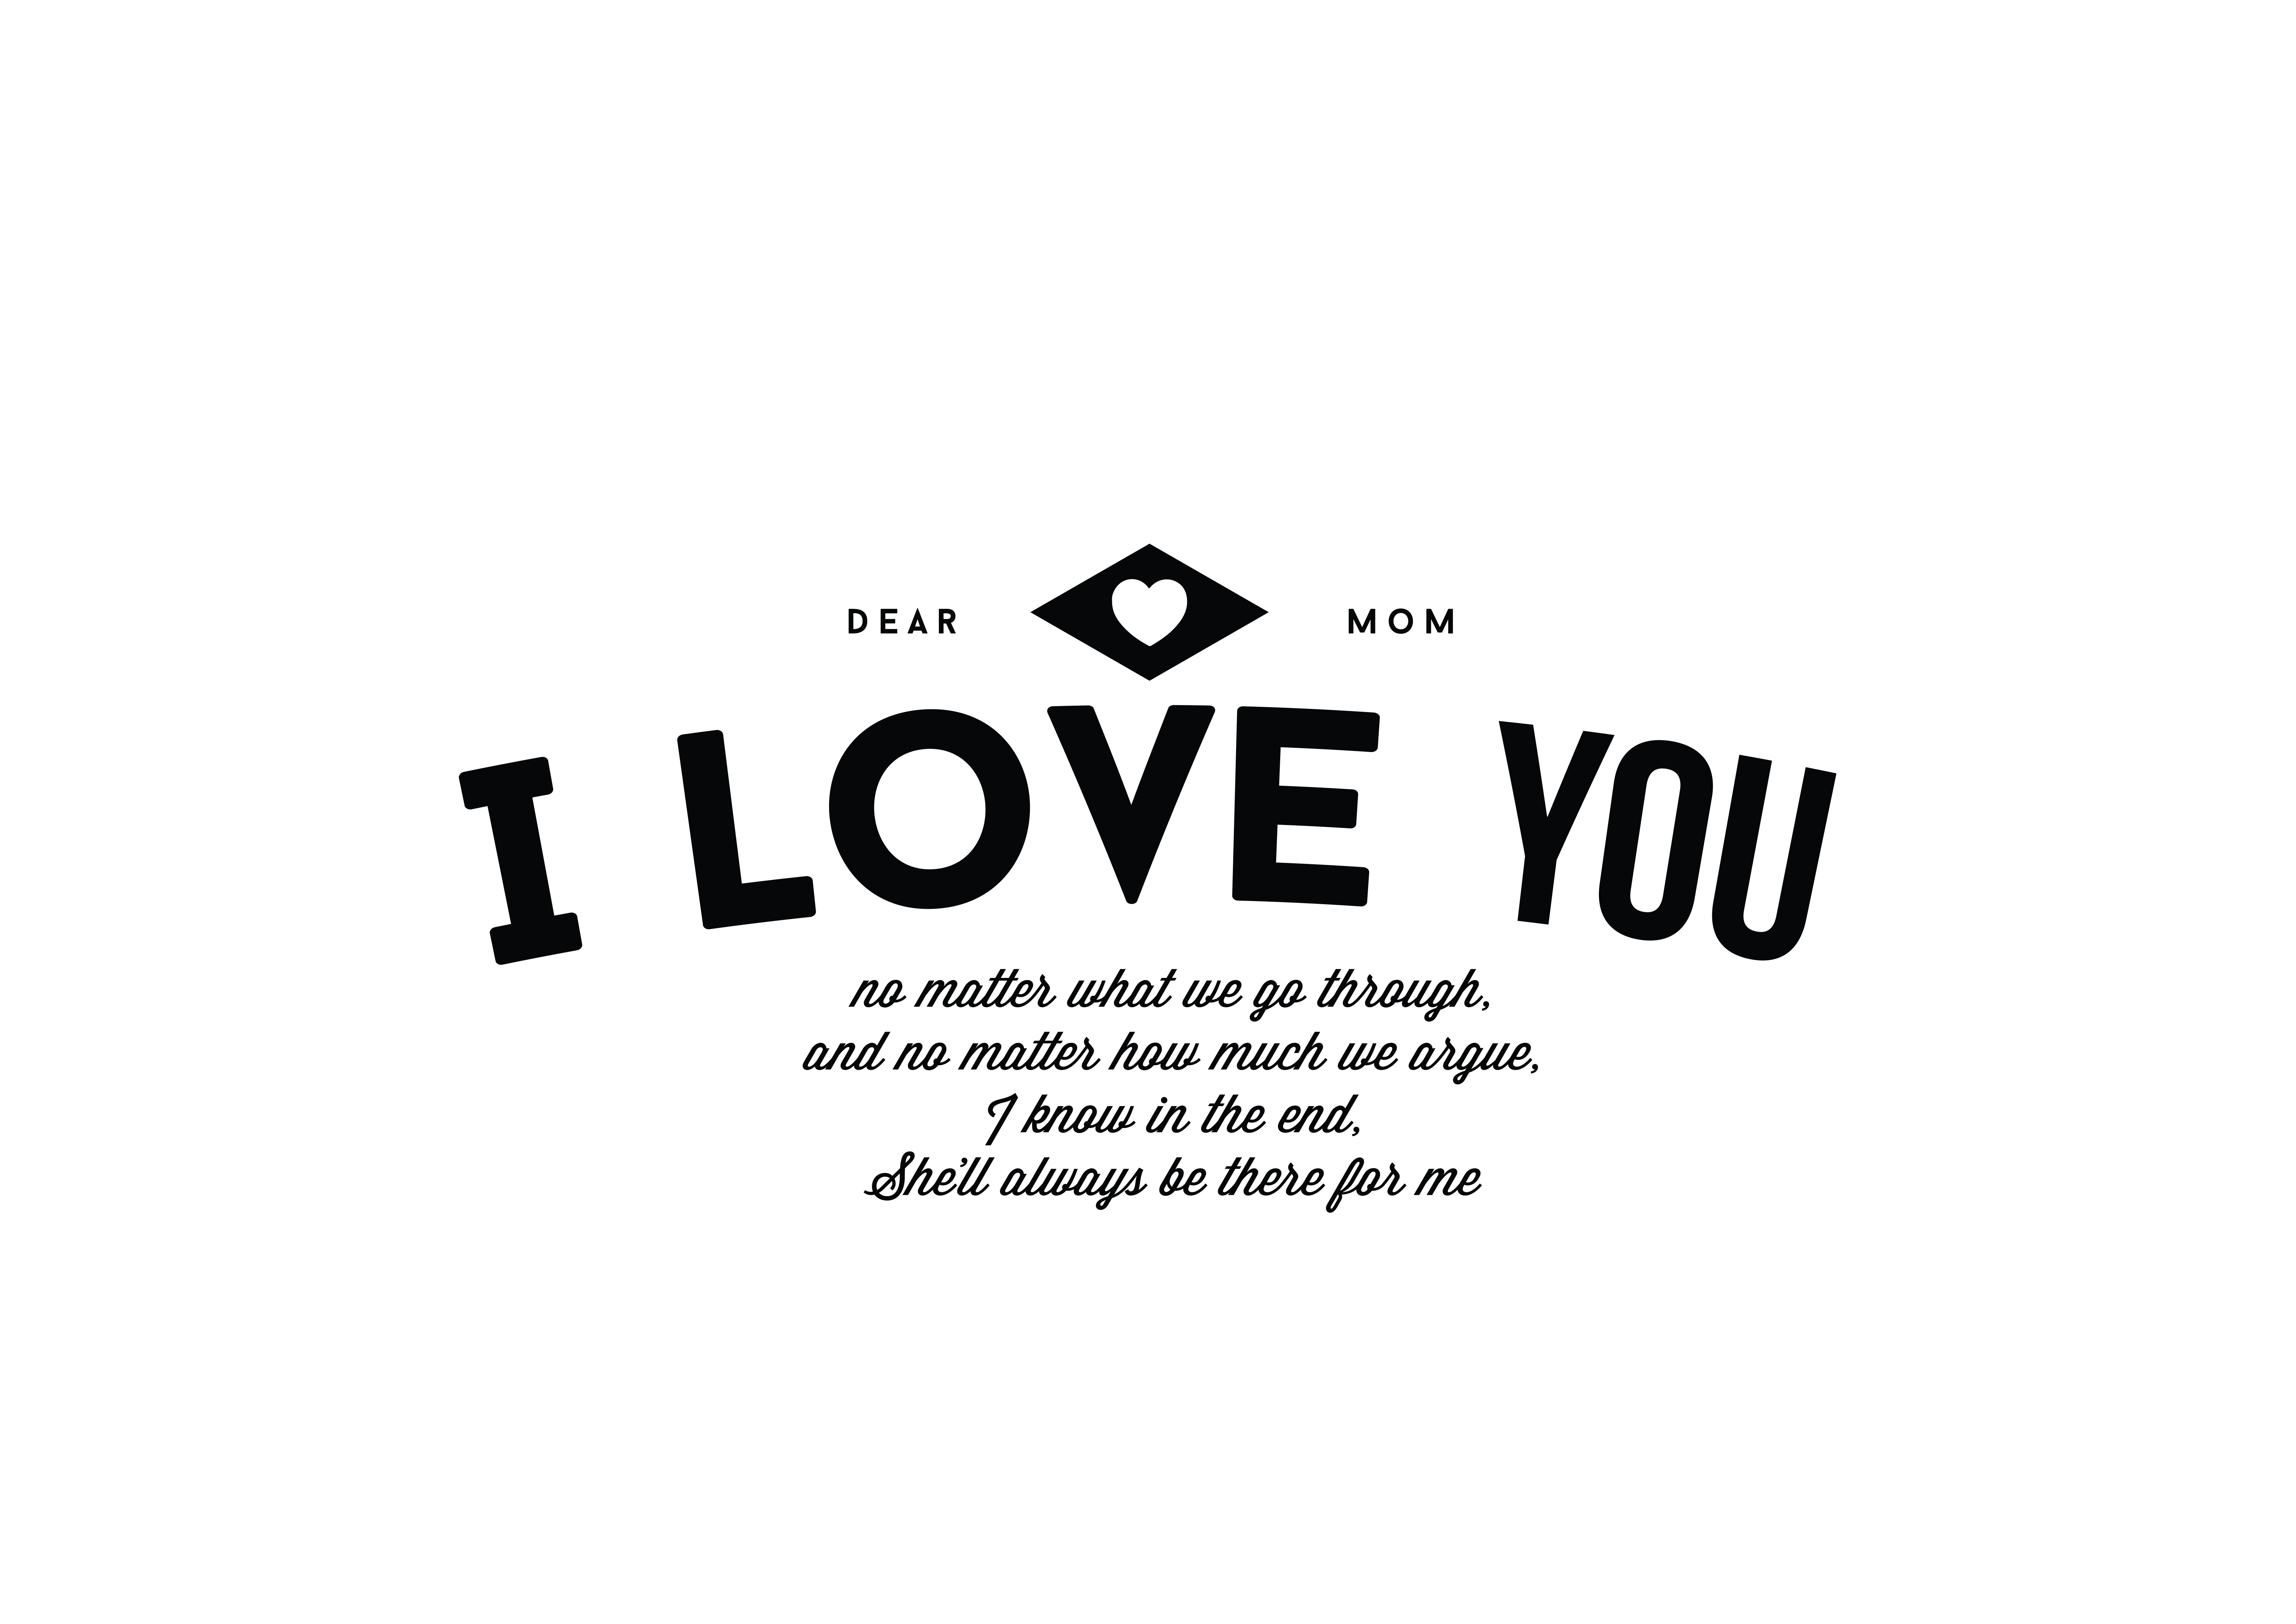 Download Free Dear Mom I Love You Graphic By Baraeiji Creative Fabrica for Cricut Explore, Silhouette and other cutting machines.